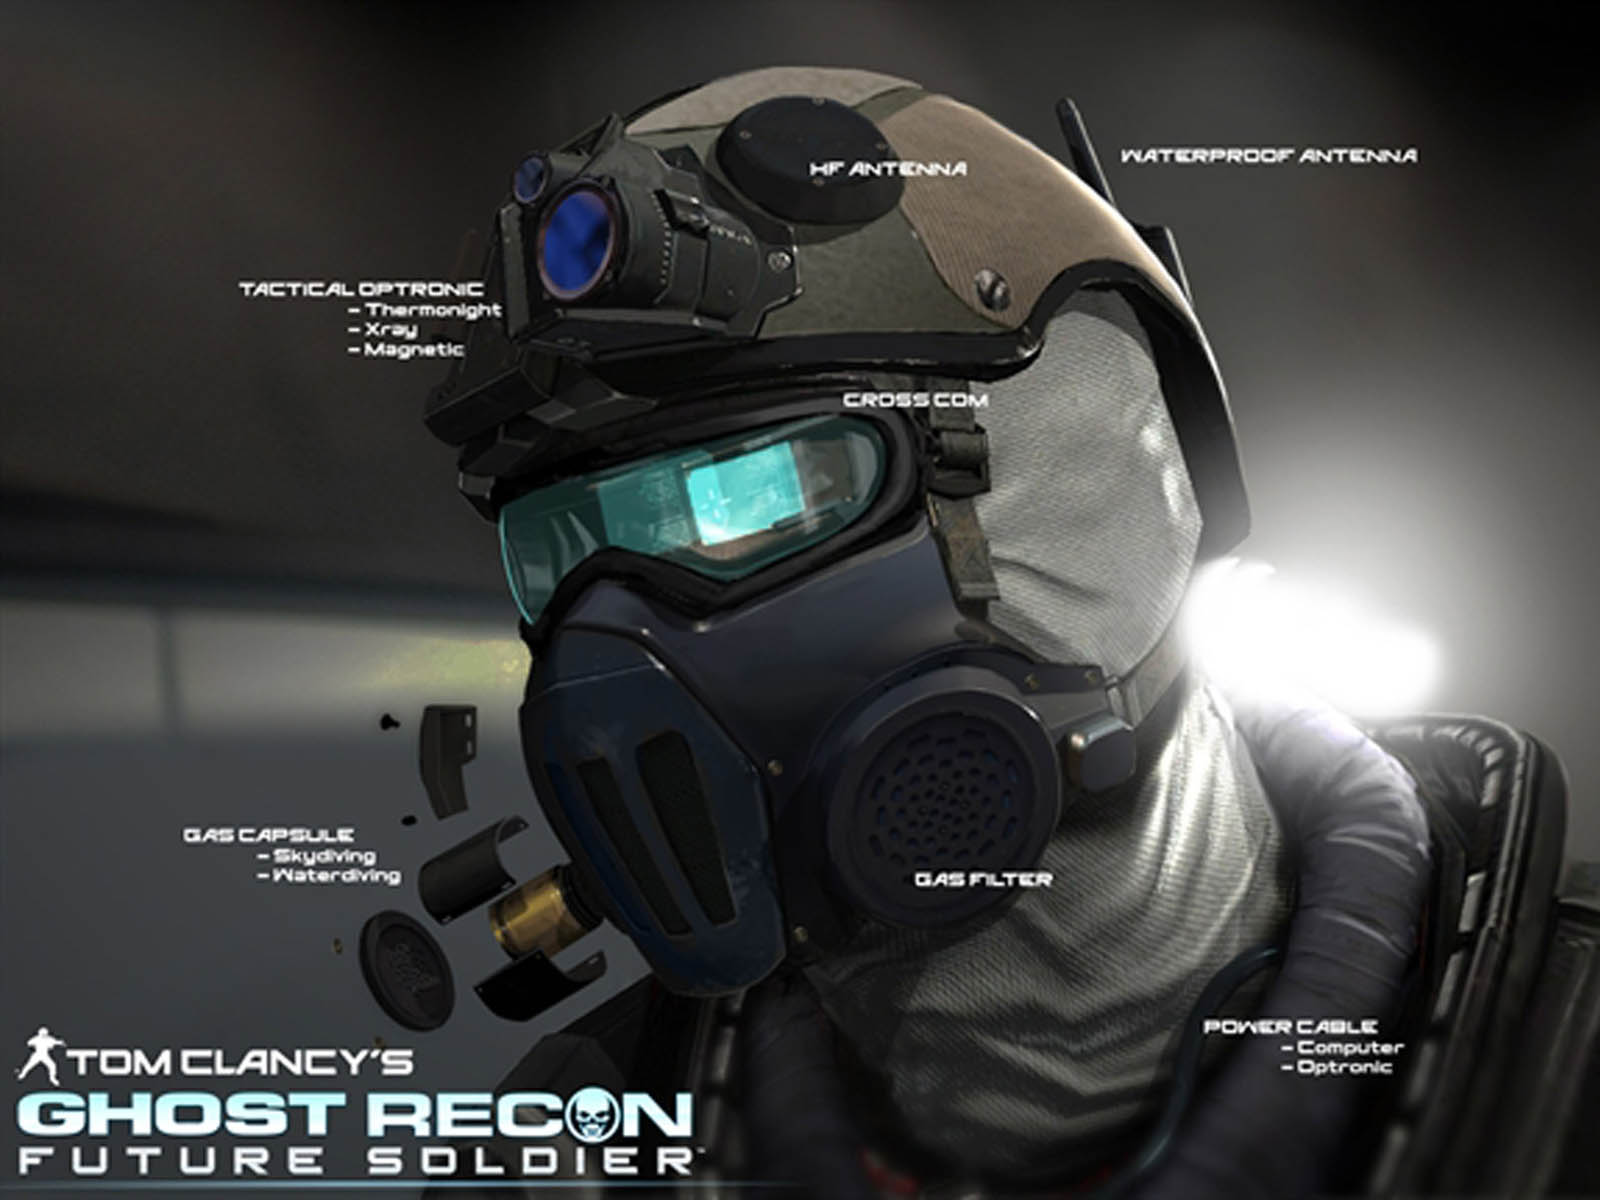 Ghost Recon Future Soldier HD & Widescreen Wallpaper 0.0516220391929358